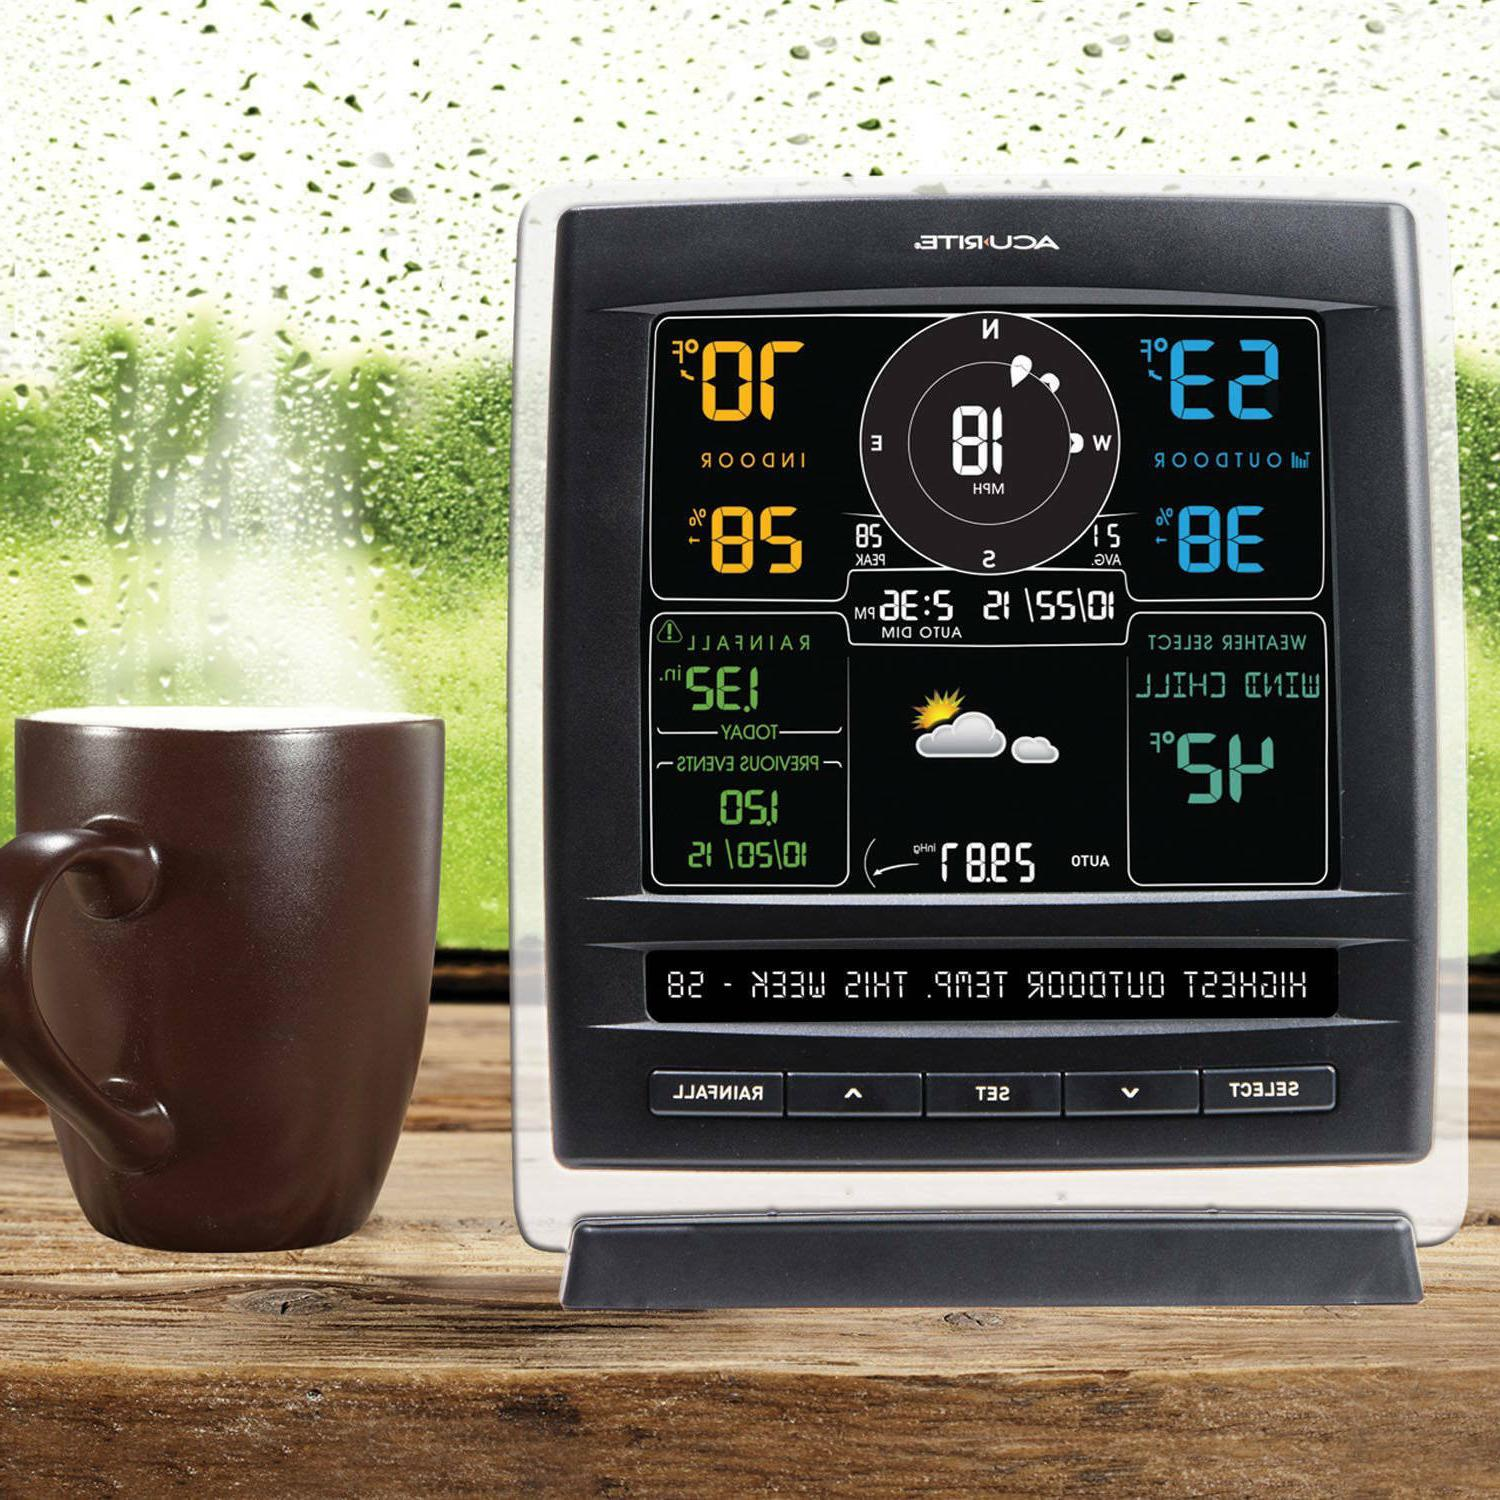 Weather Station 5 1 Personal Forecast Yard Sensor Outdoor Measure Temperature